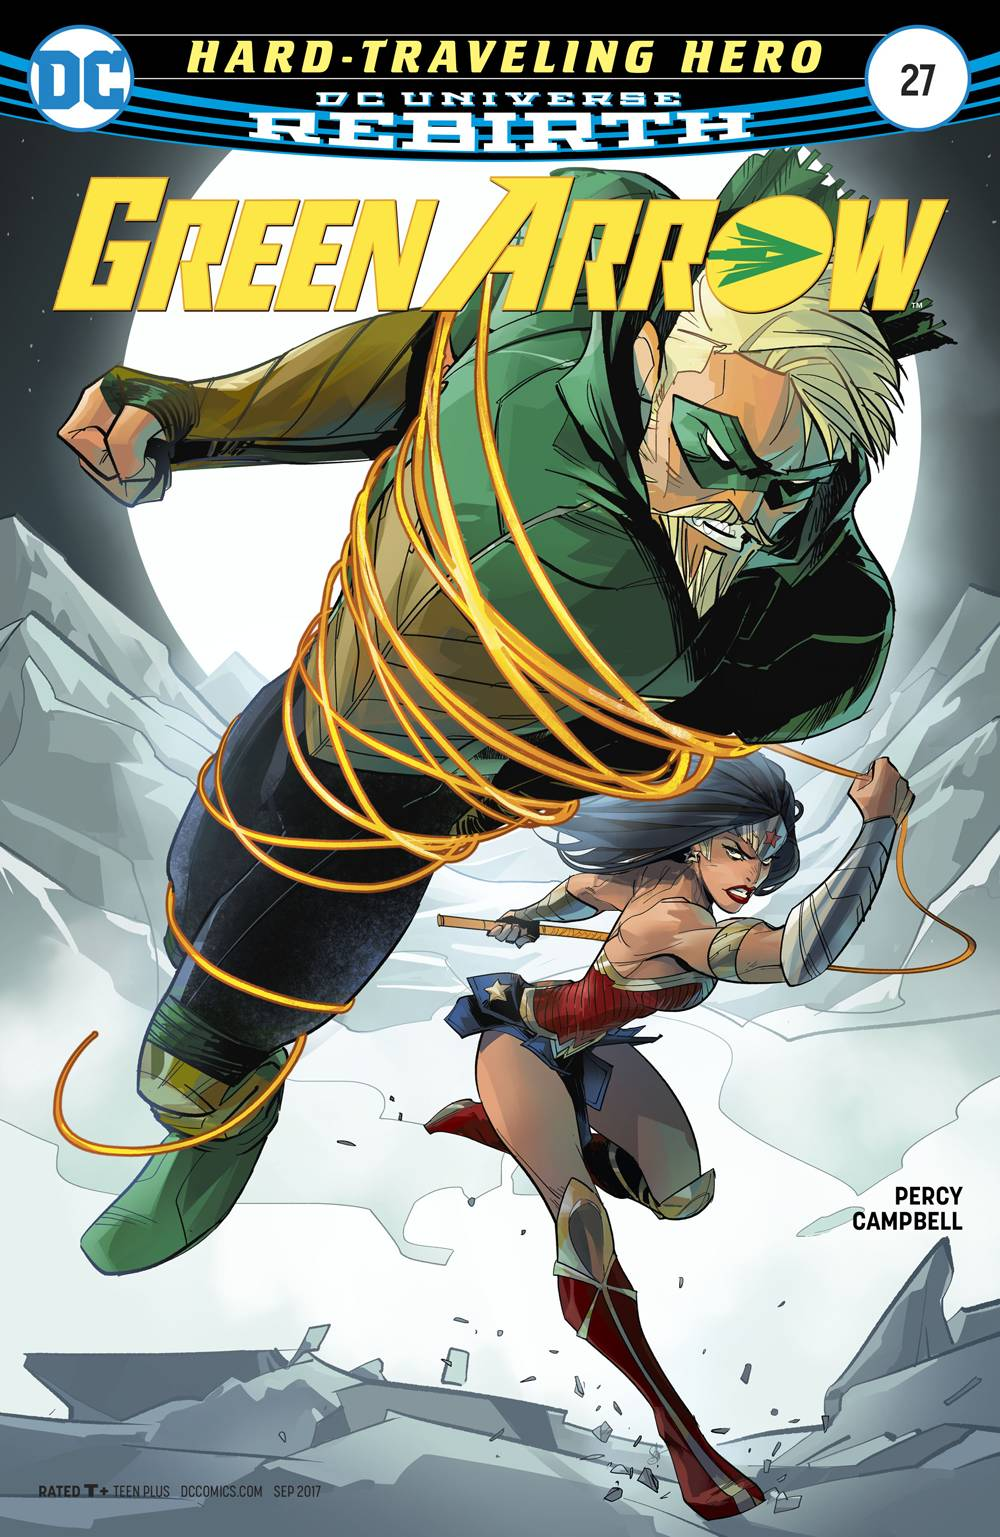 GREEN ARROW 27.jpg